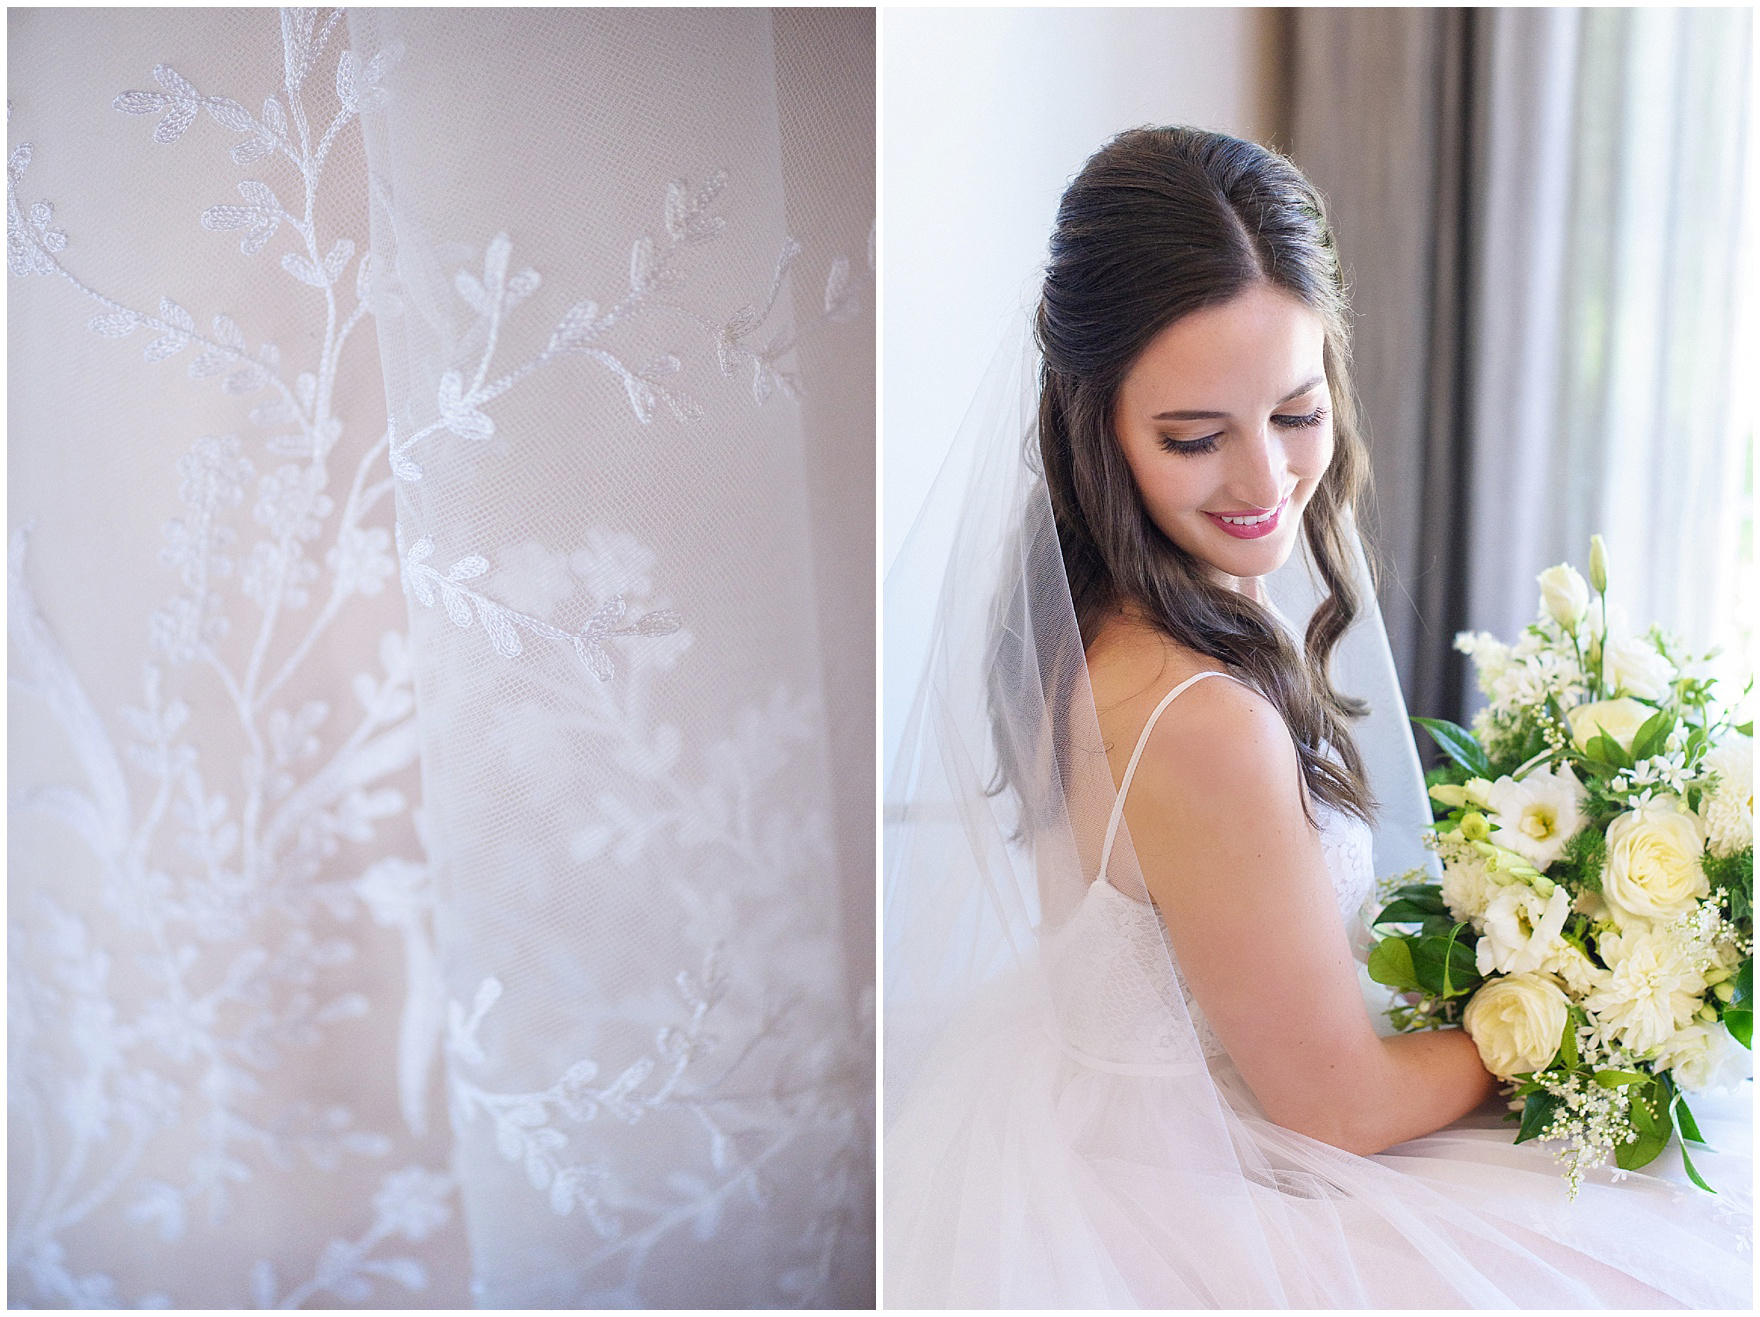 Bridal portraits and details of the bride's dress for a Butterfield Country Club wedding.